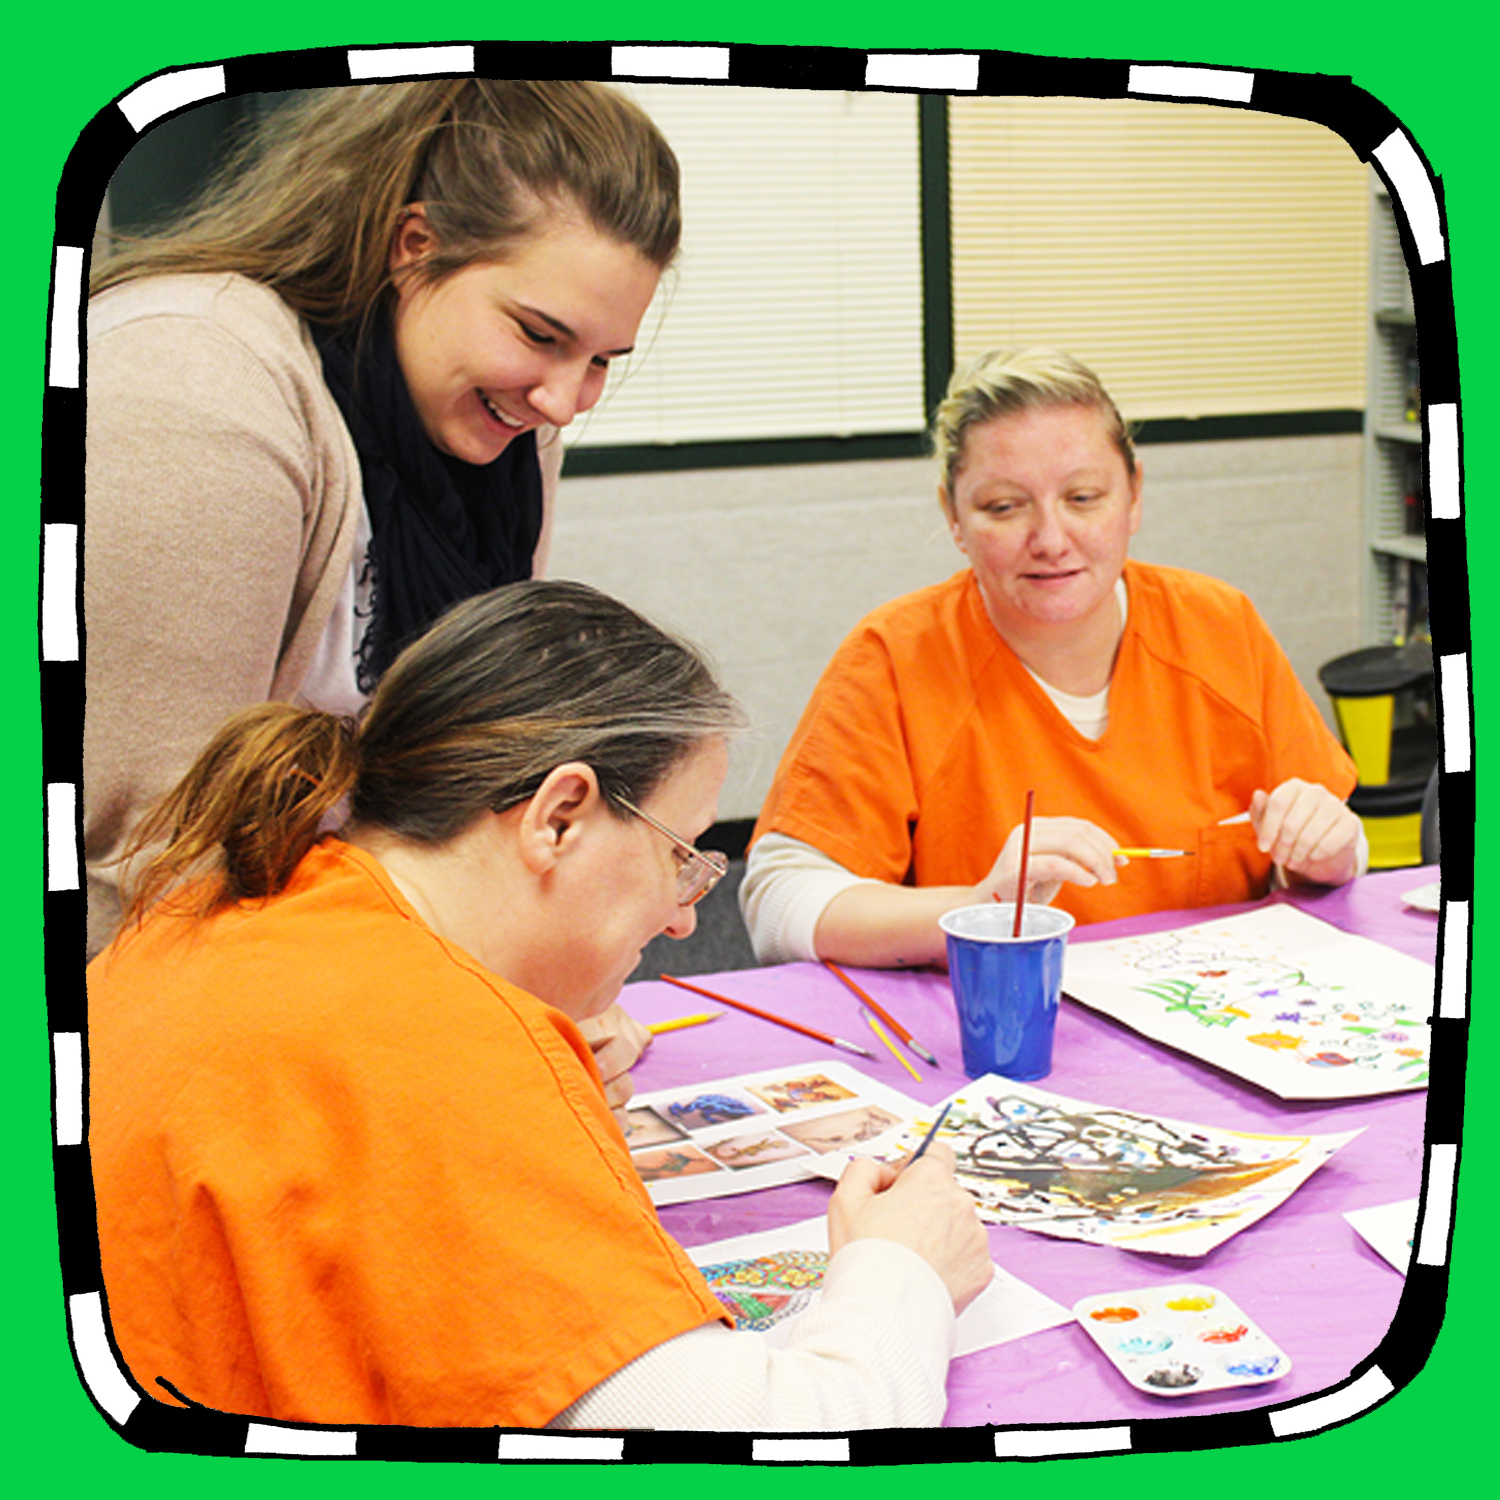 ART EXPLORATIONFOR ADULT INMATES (Partnered Internship) - Location: Dunn County Jail (2.6 miles from Stout - vehicle needed)90-minute classes that meet twice per week (flexible days/times)Estimated class size: 8-10Plan and lead art lessons to inmates. Inmates will explore drawing and/or watercolor media to gain skills, express themselves, and allow for personal growth. Paid planning time included.